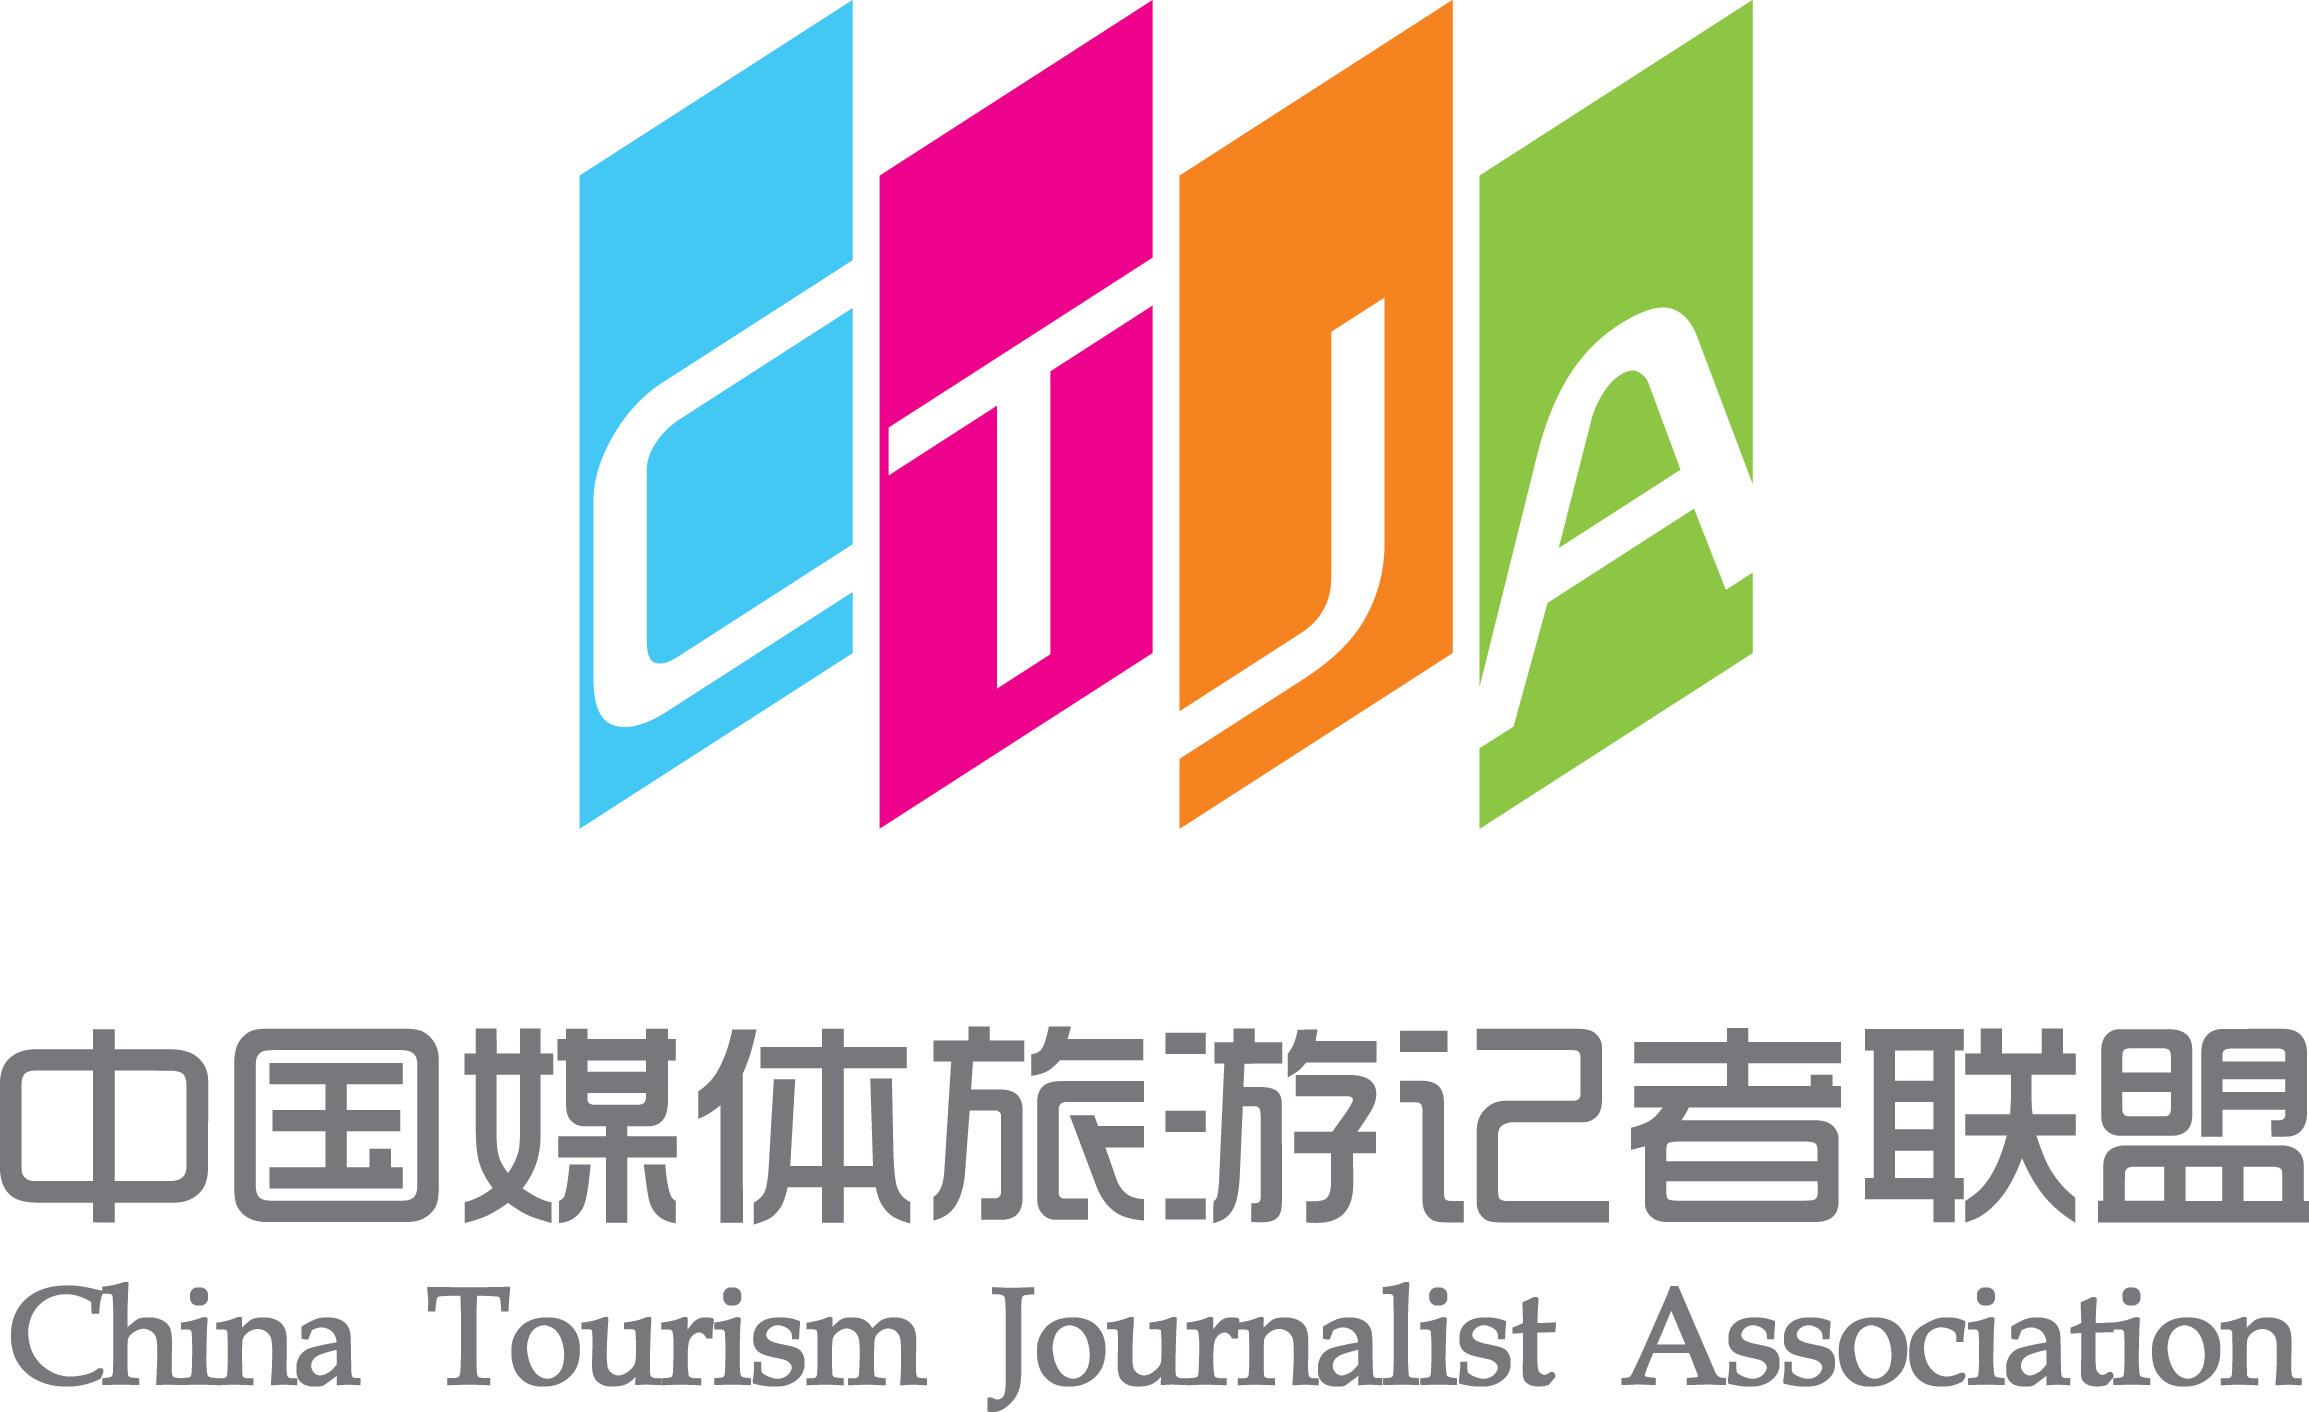 China Tourism Journalist Association